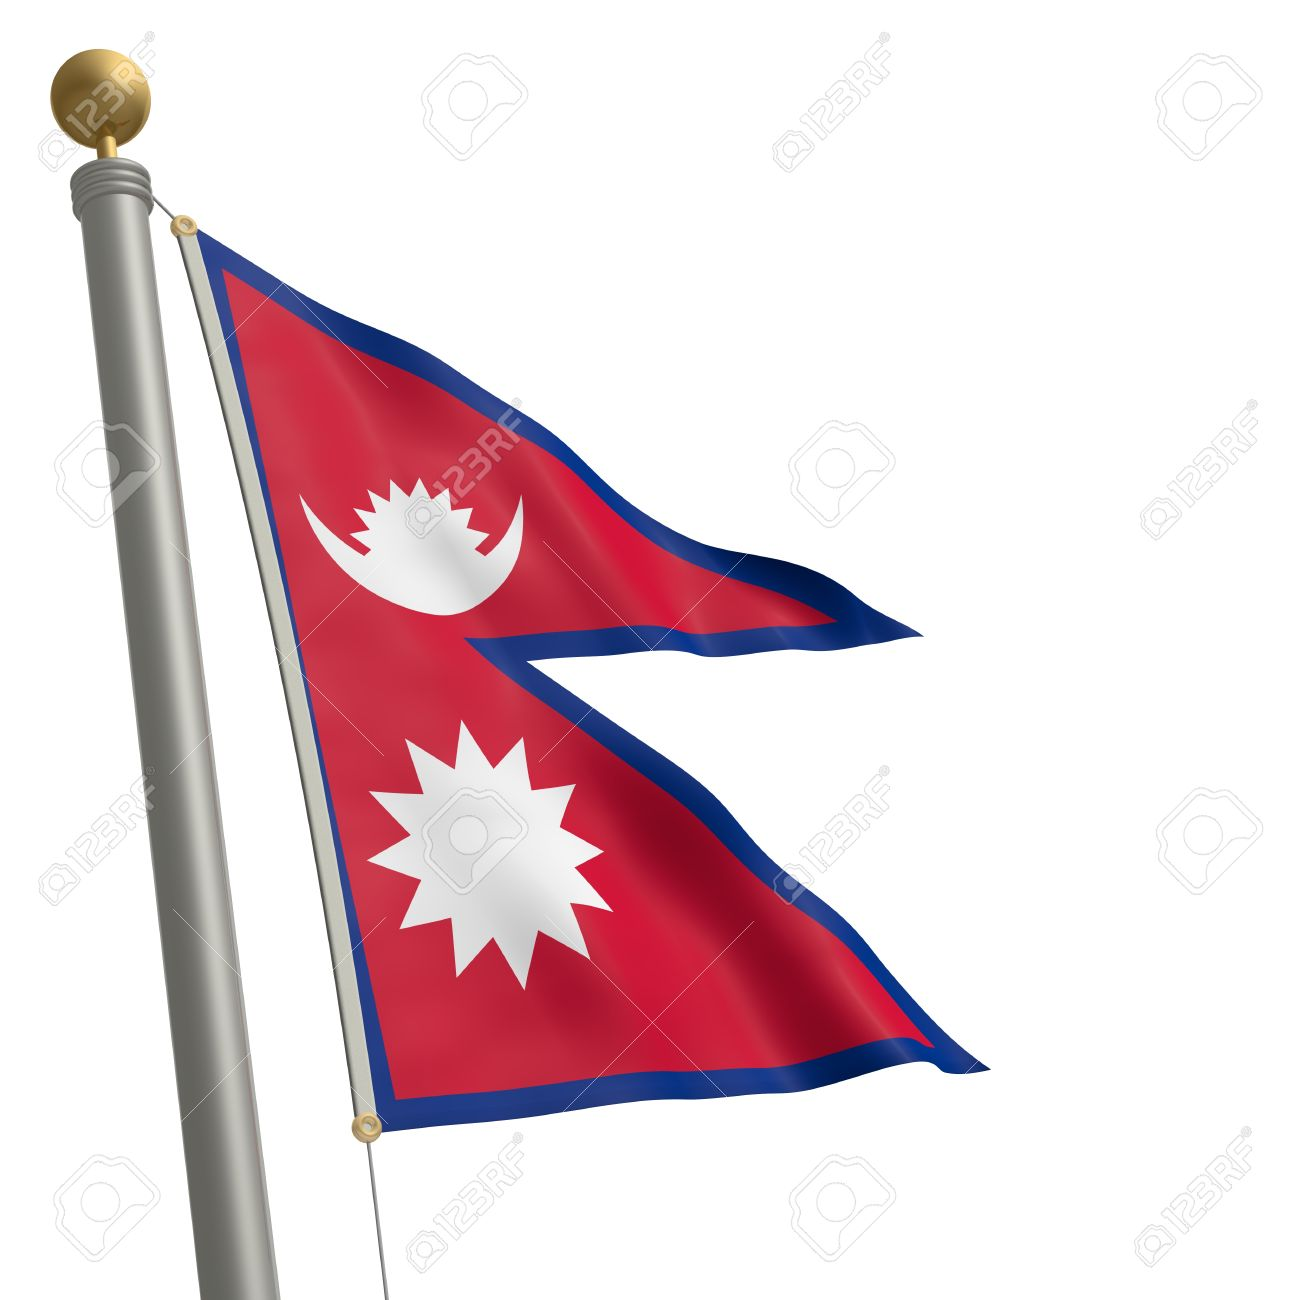 Nepal Condemns terrorist attack in UK